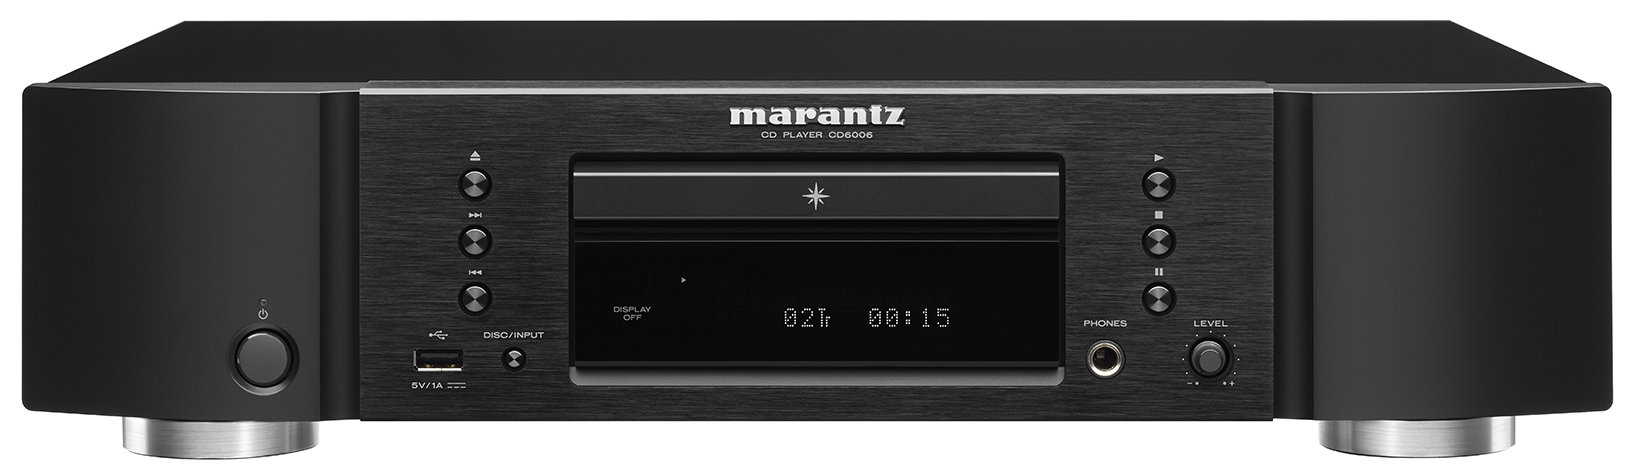 marantz cd 6006 2 tests infos 2018. Black Bedroom Furniture Sets. Home Design Ideas